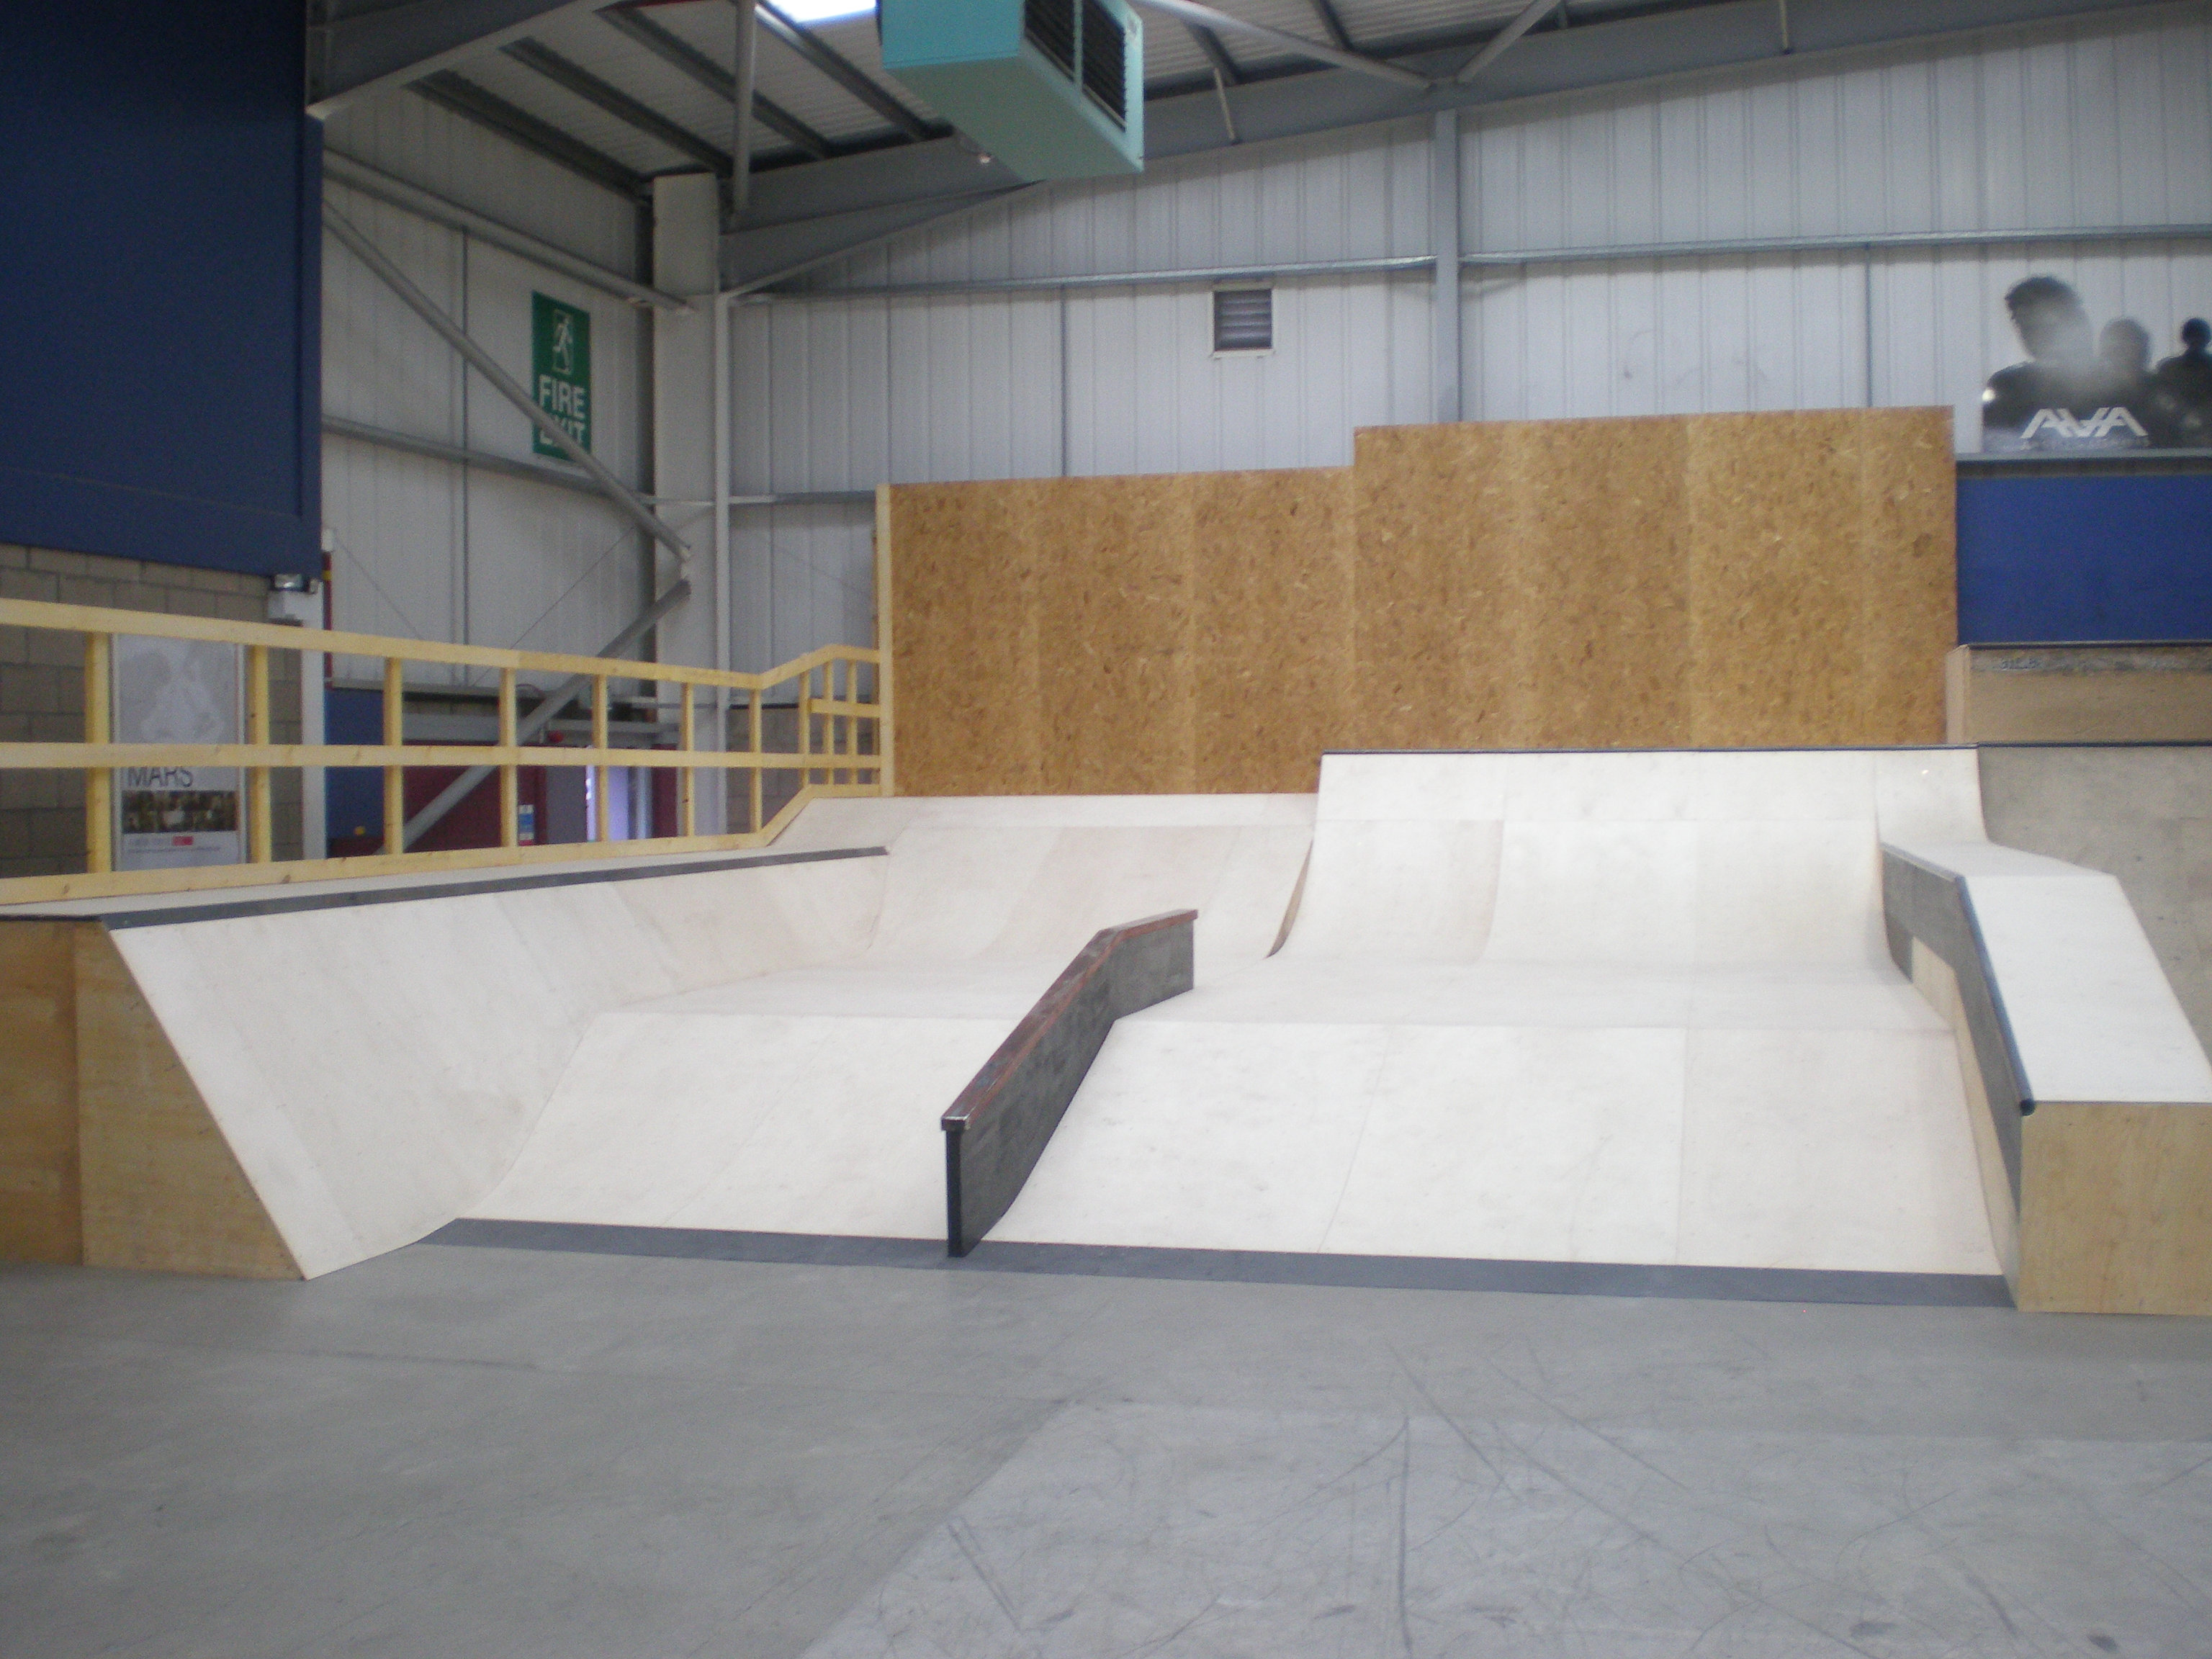 Fearless ramps sutton indoor skate park for Indoor skatepark design uk